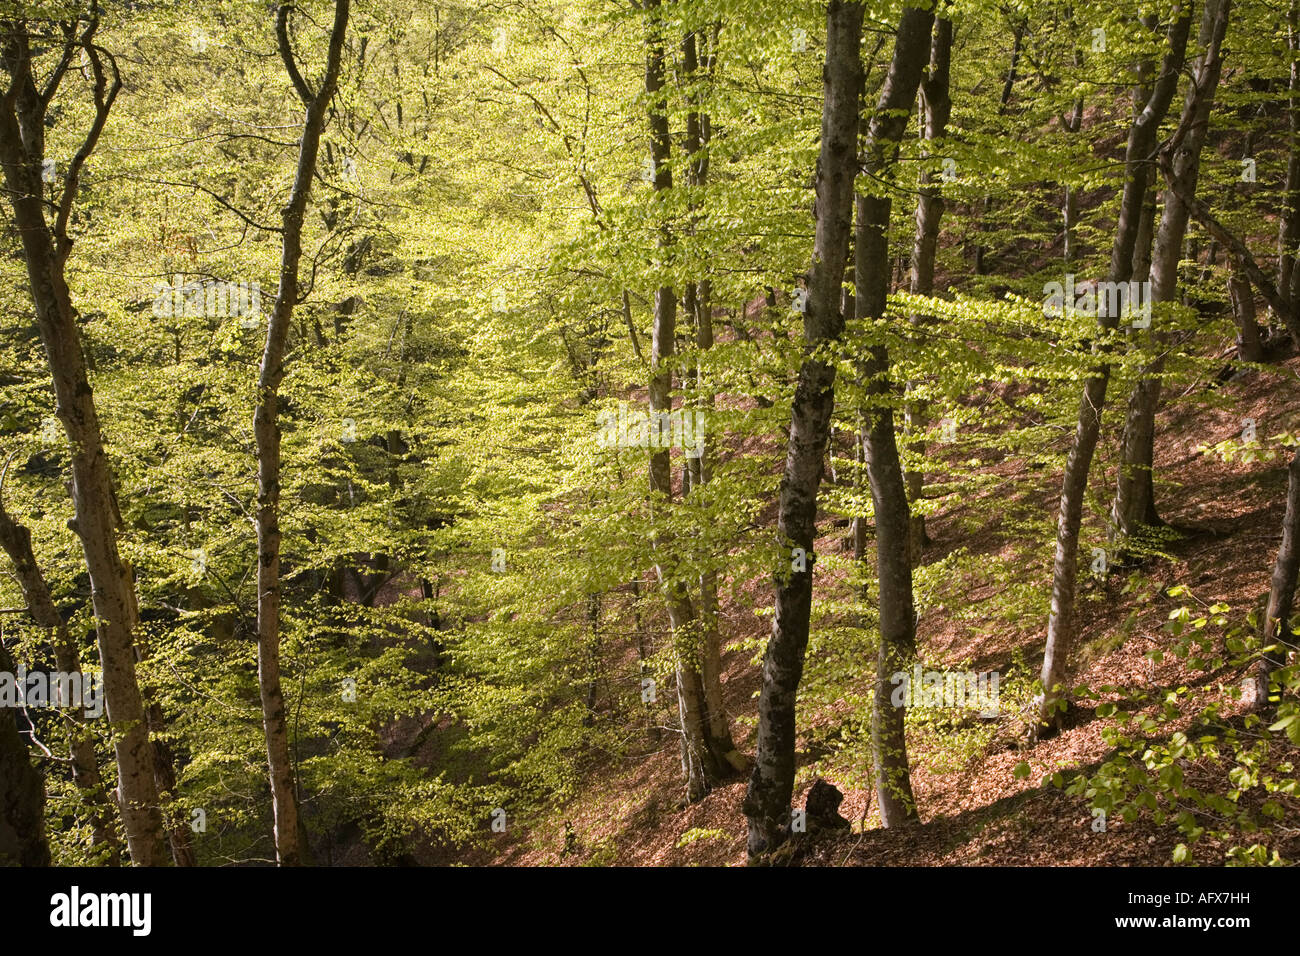 Sweden  Scania beech forest in spring May 2006 Stock Photo